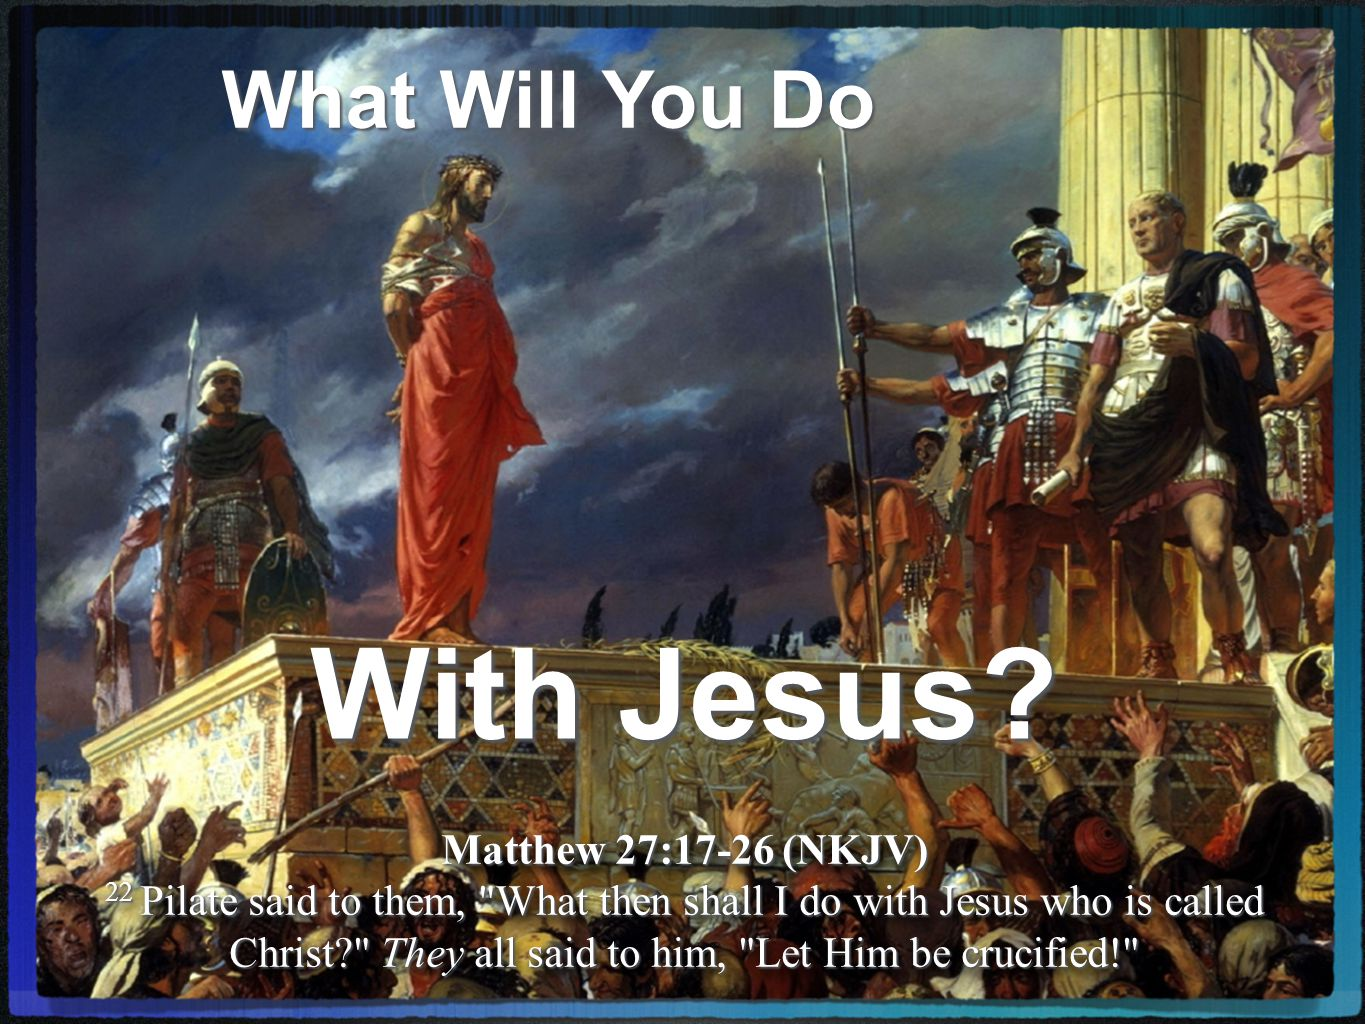 What Will You Do With Jesus.Events Leading Up To Our Text Matthew 27:22 (NKJV) 22...